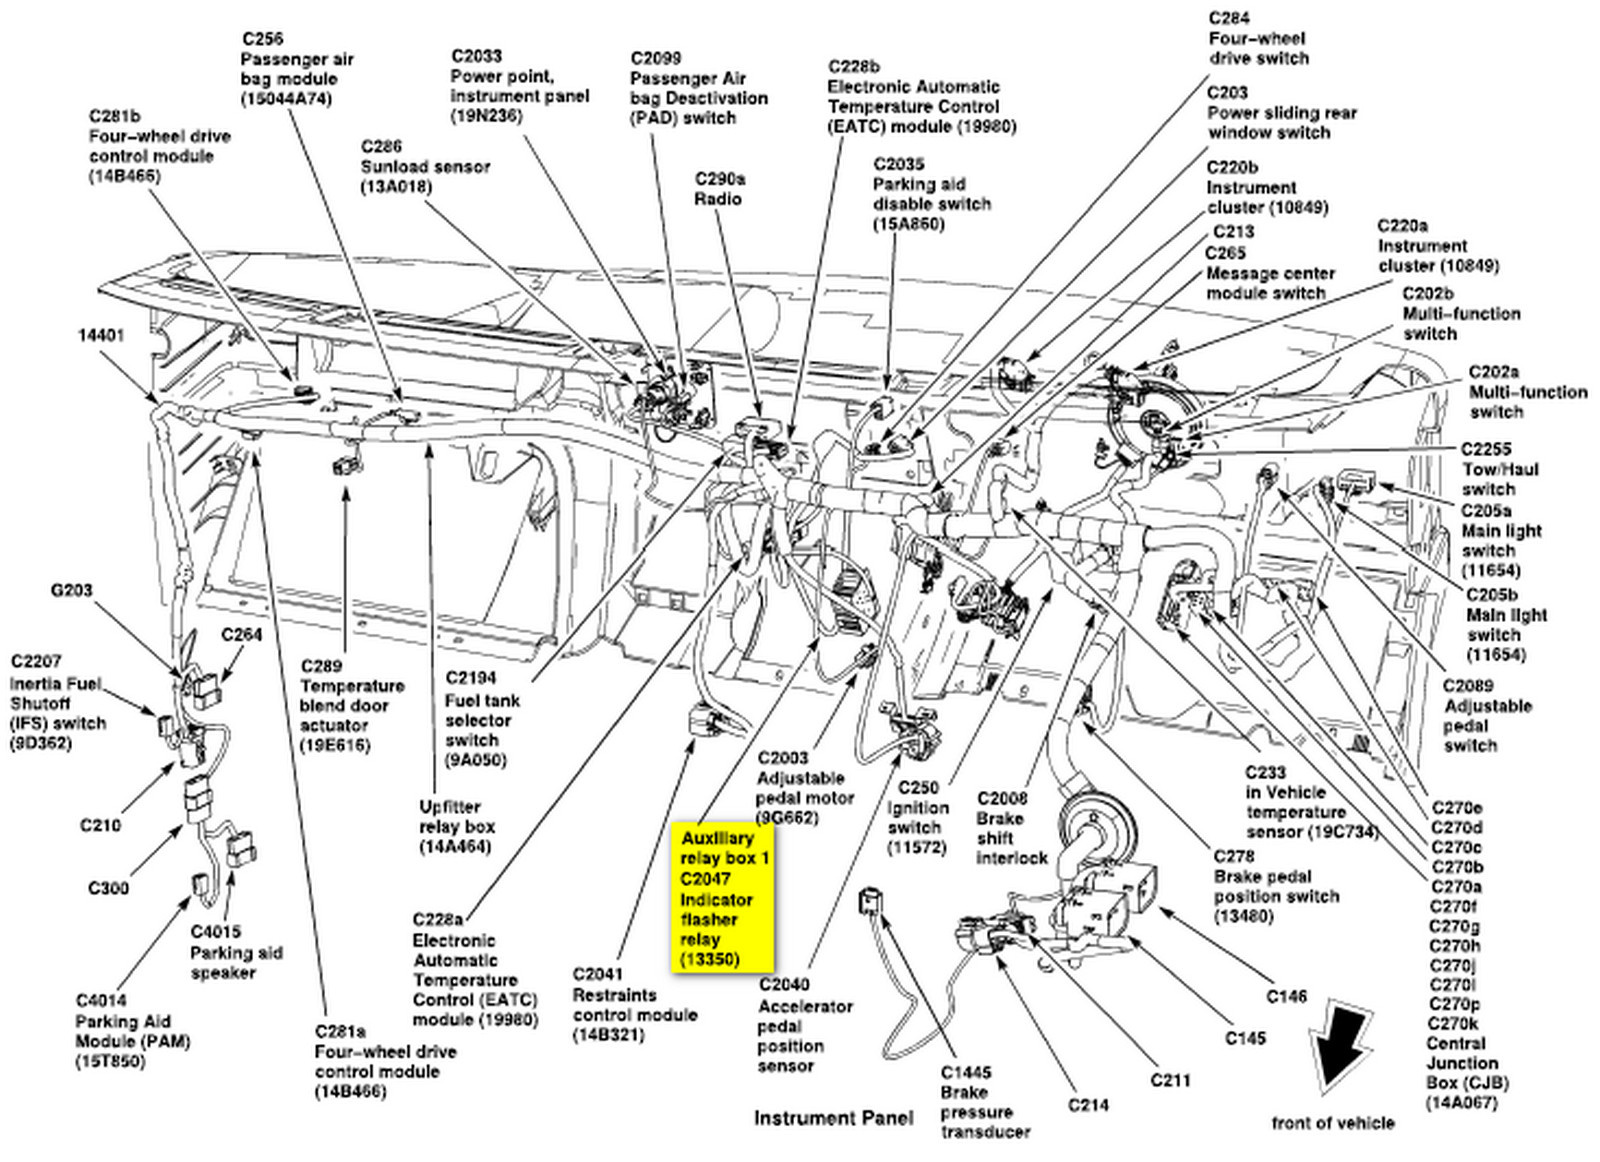 2000 chevy silverado door parts diagram wiring schematic images gallery   ford e series cargo questions